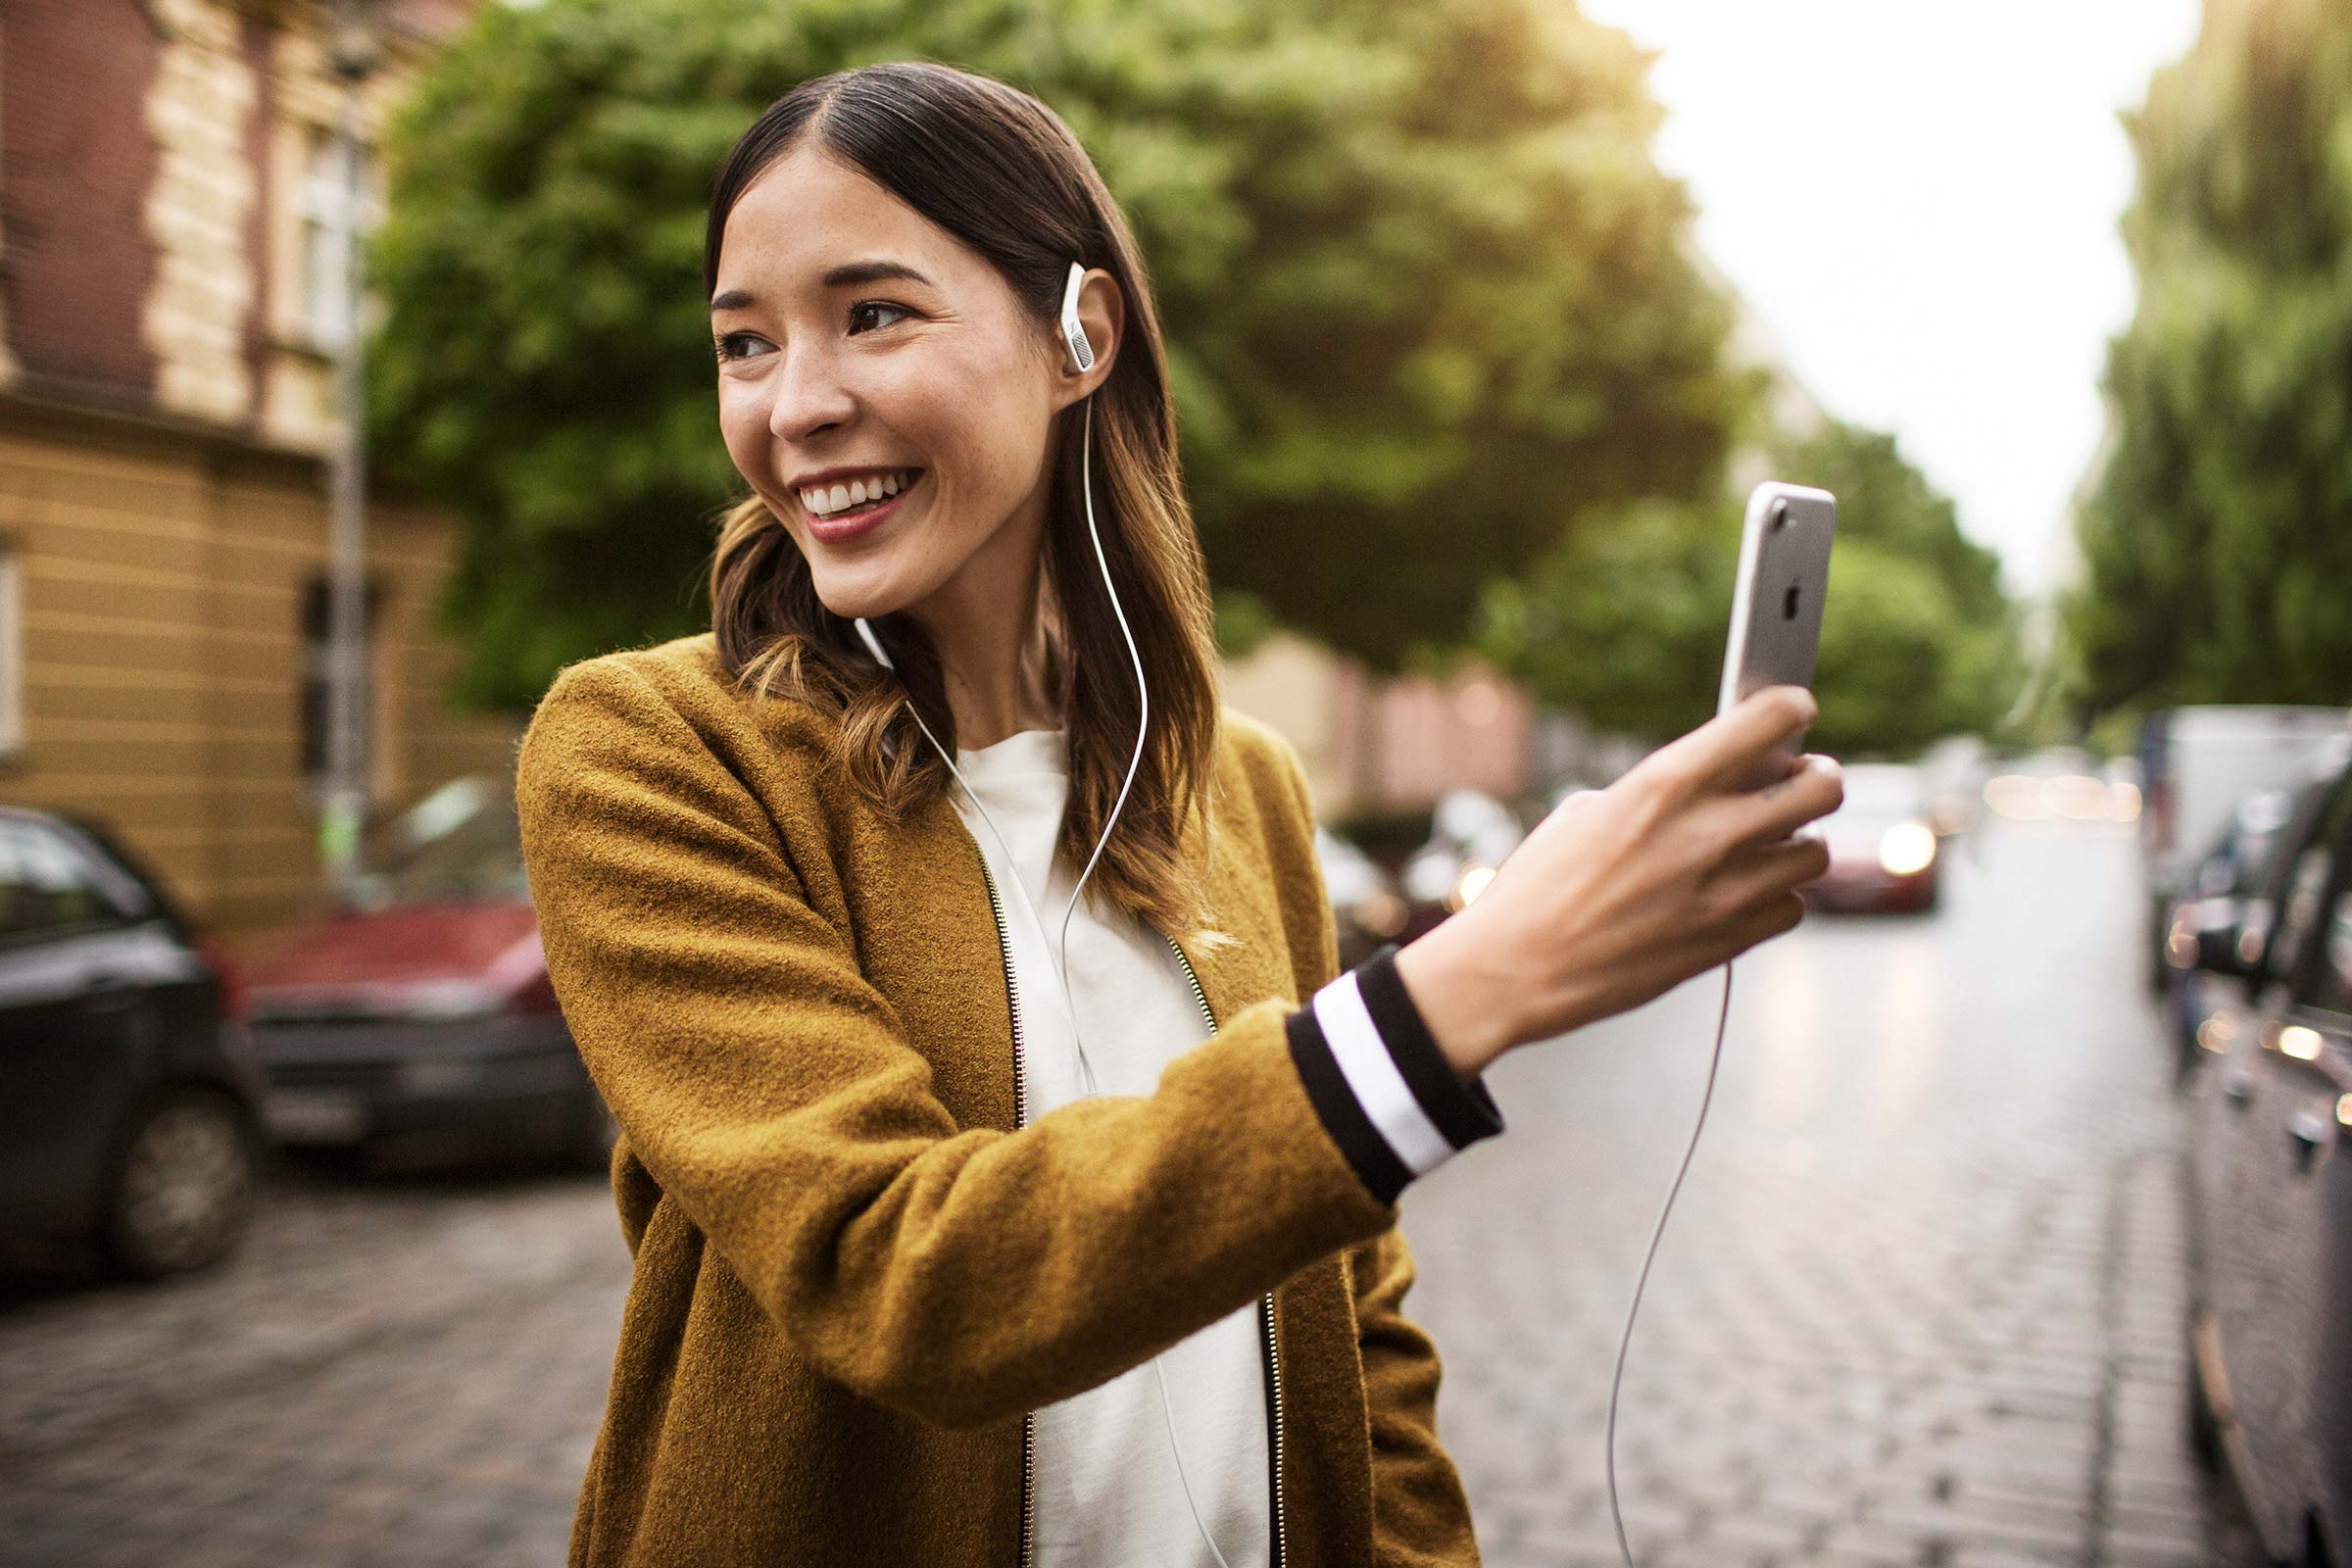 5 Awesome Uses Of The Sennheiser AMBEO SMART HEADSET